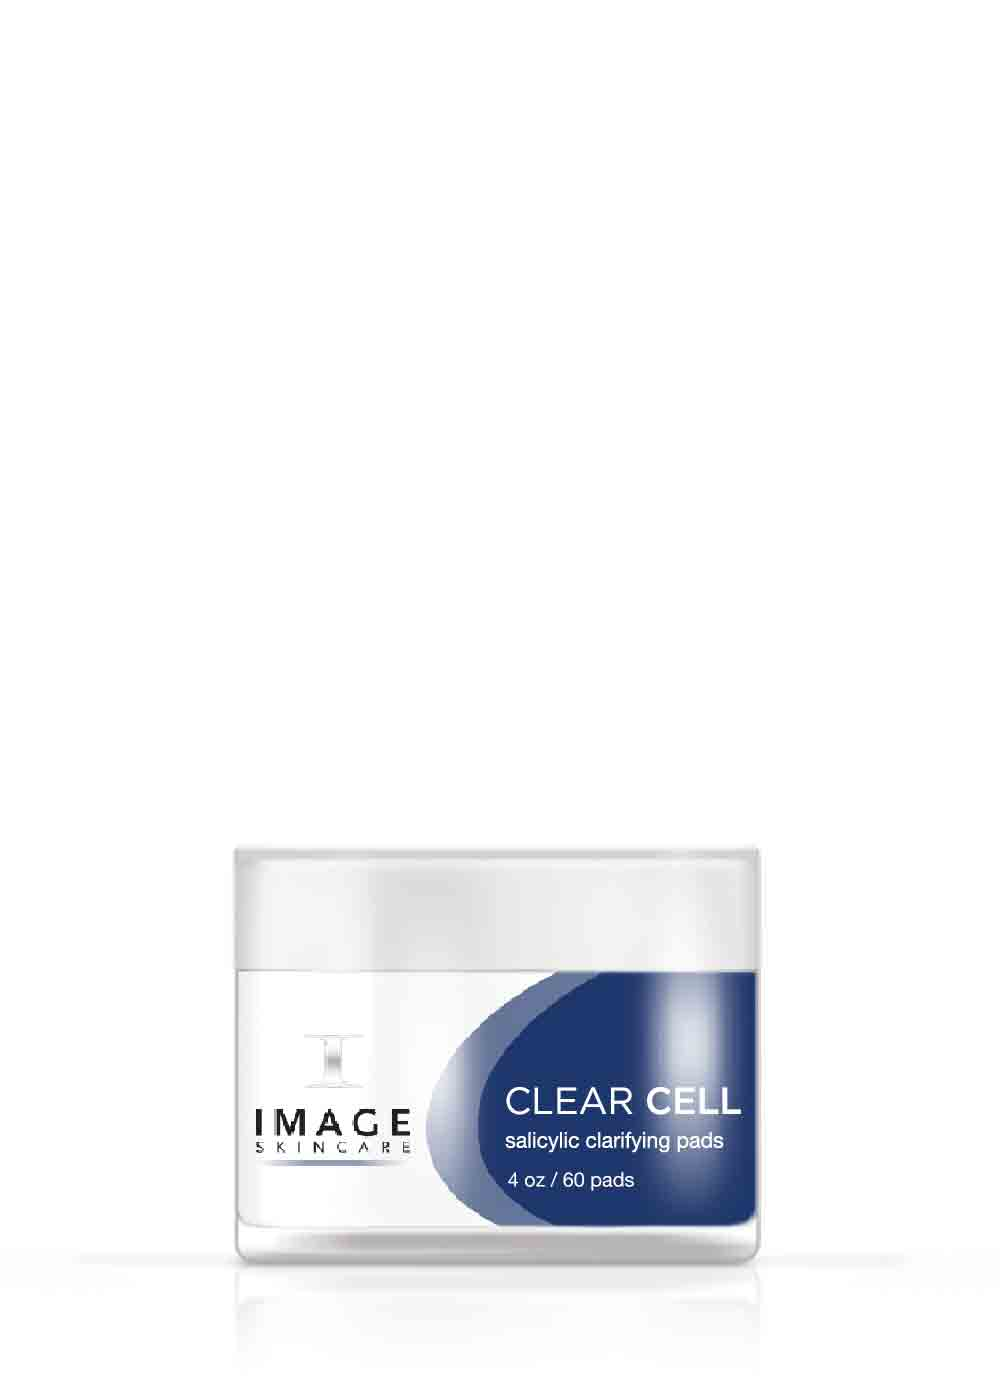 CLEAR CELL salicylic clarifying pads disques nettoyants à l'acide salicylique